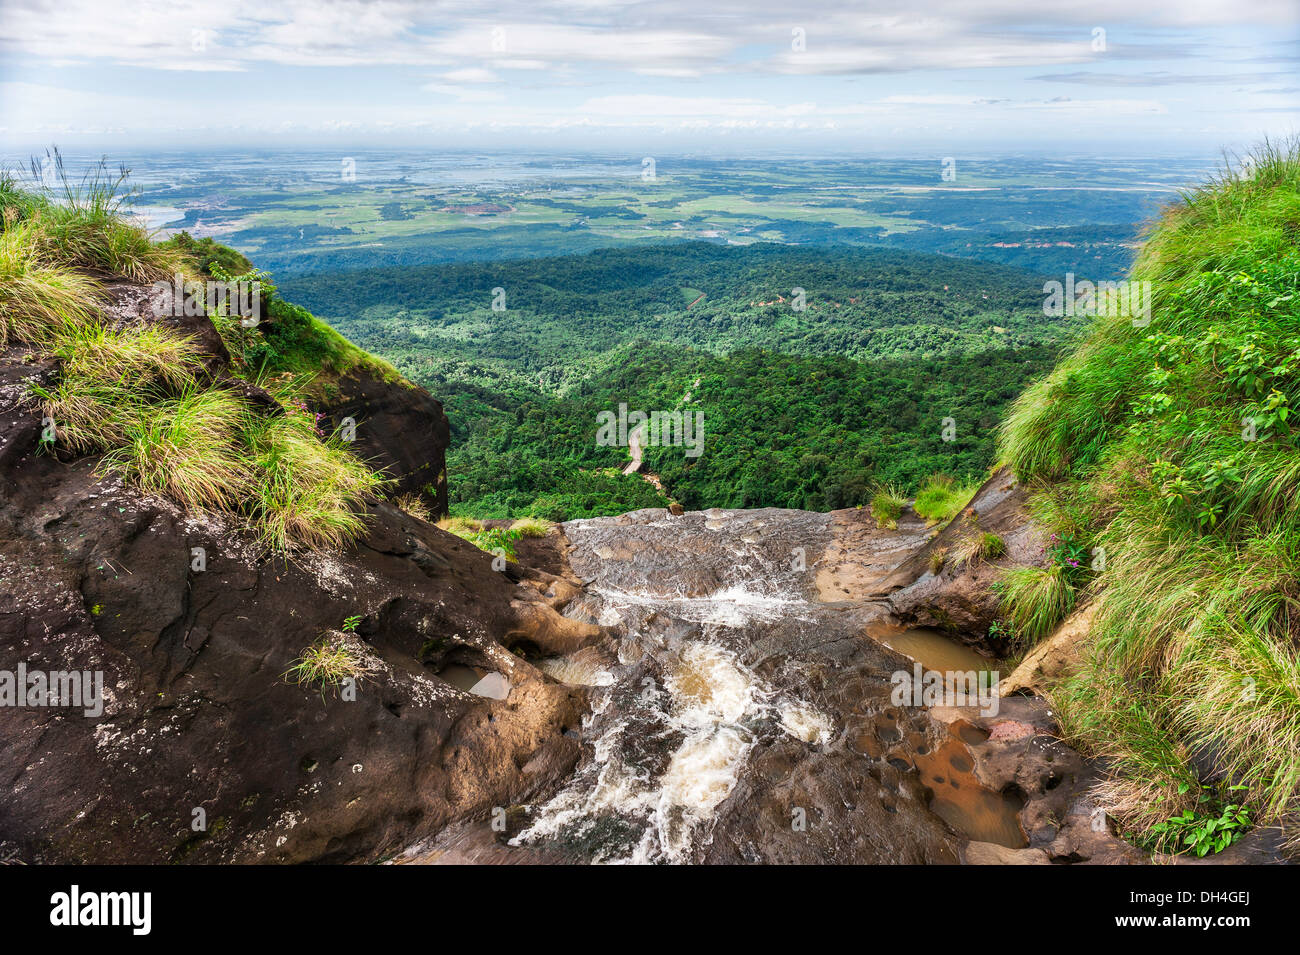 Waterfall over the Khasi Hill overlooking the road and forests of Bangladesh shot from near Cherrapunjee, India. - Stock Image